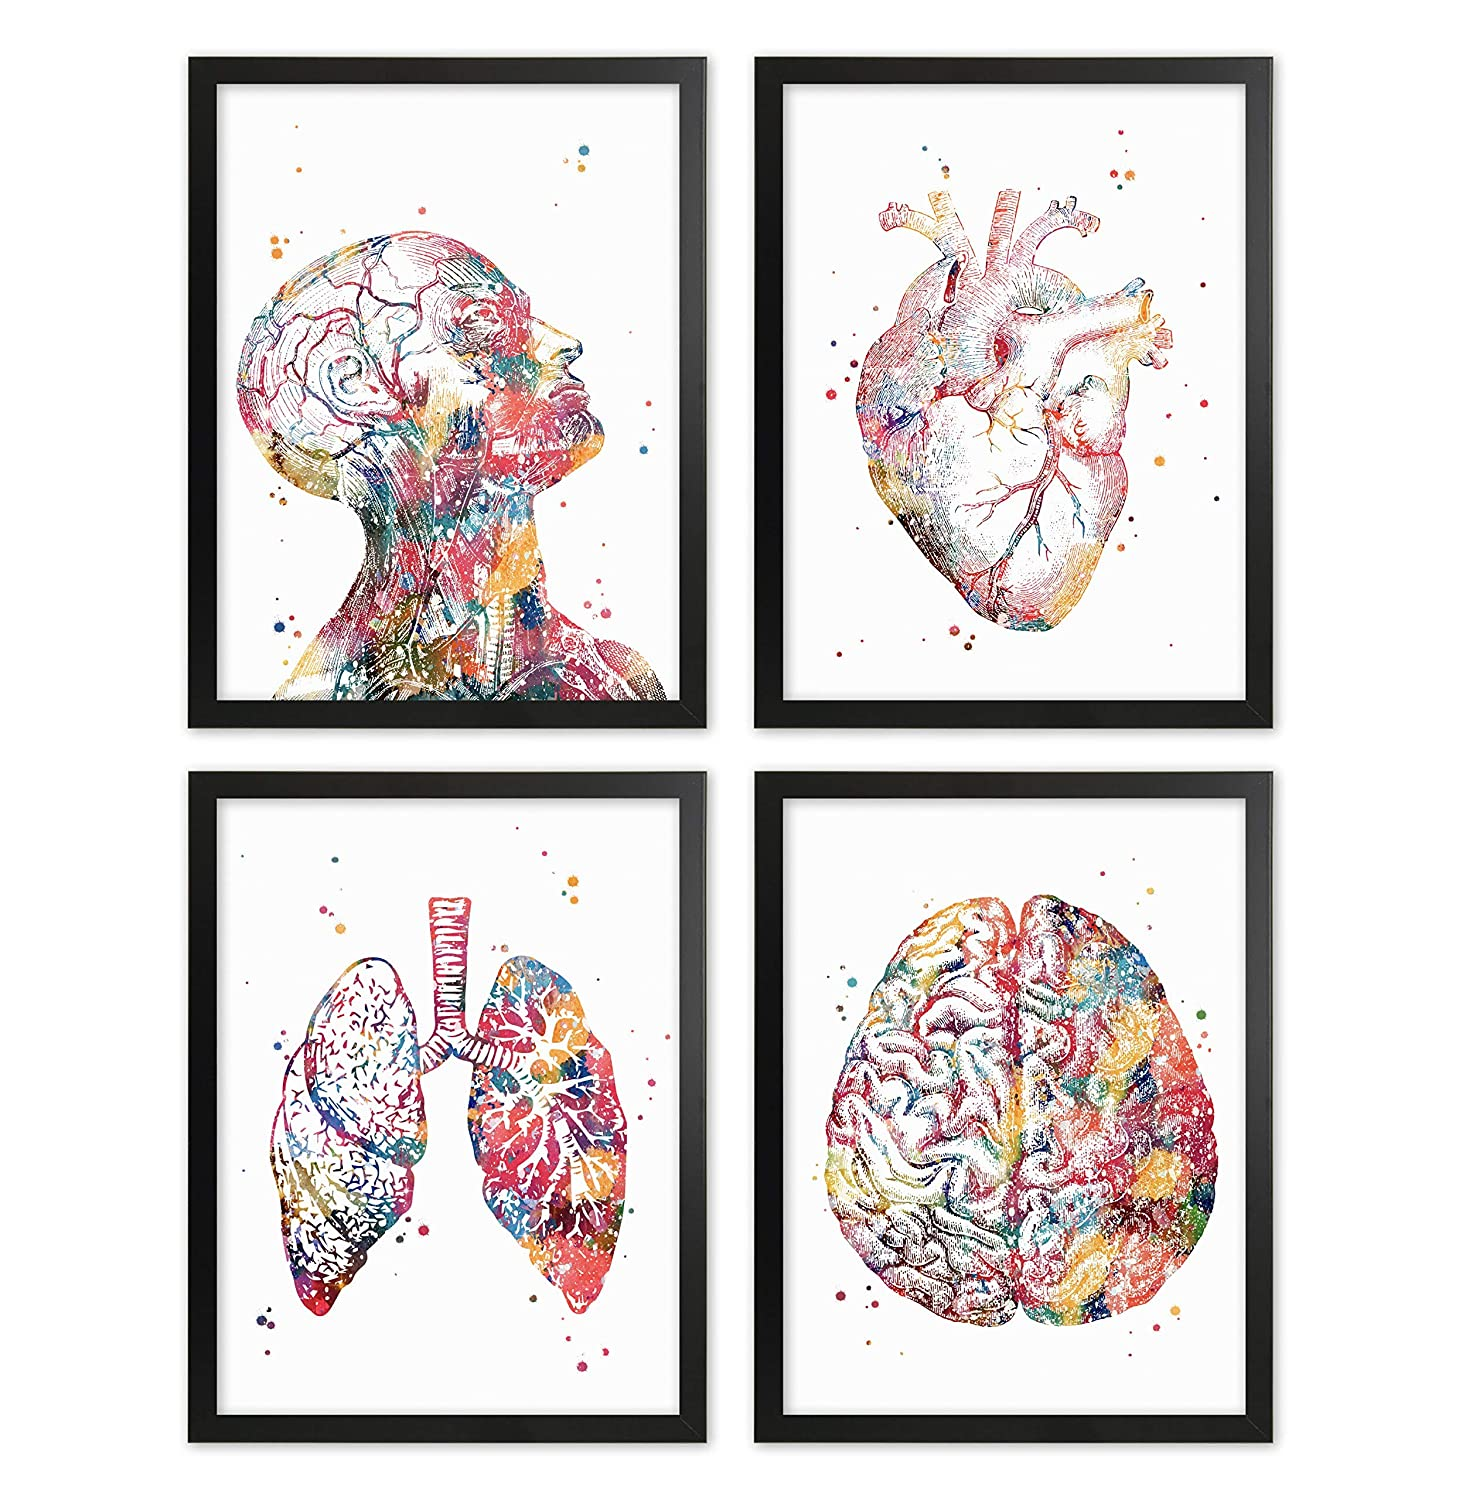 Human Anatomy Print Set Human Head Torso Wall Art Heart Artworks Lungs Wall Decor Brain Doctor Office Decor Medical Art Nurse Room Decor Great Gift for Doctors